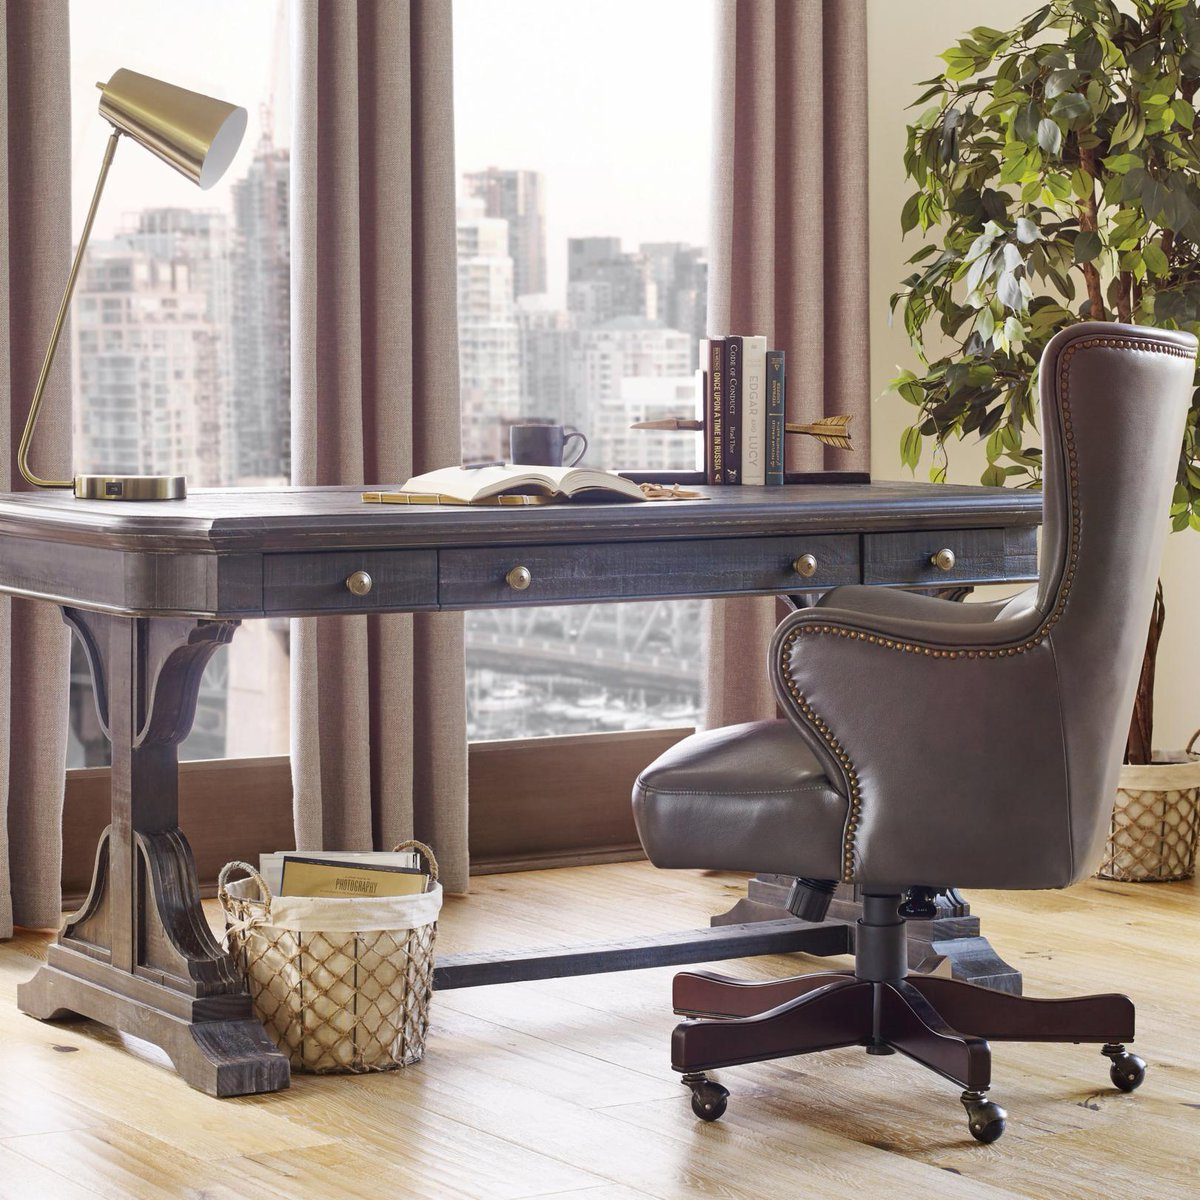 urban barn on twitter outfit your office for peak productivity rh twitter com peak office furniture denver peak office furniture denver